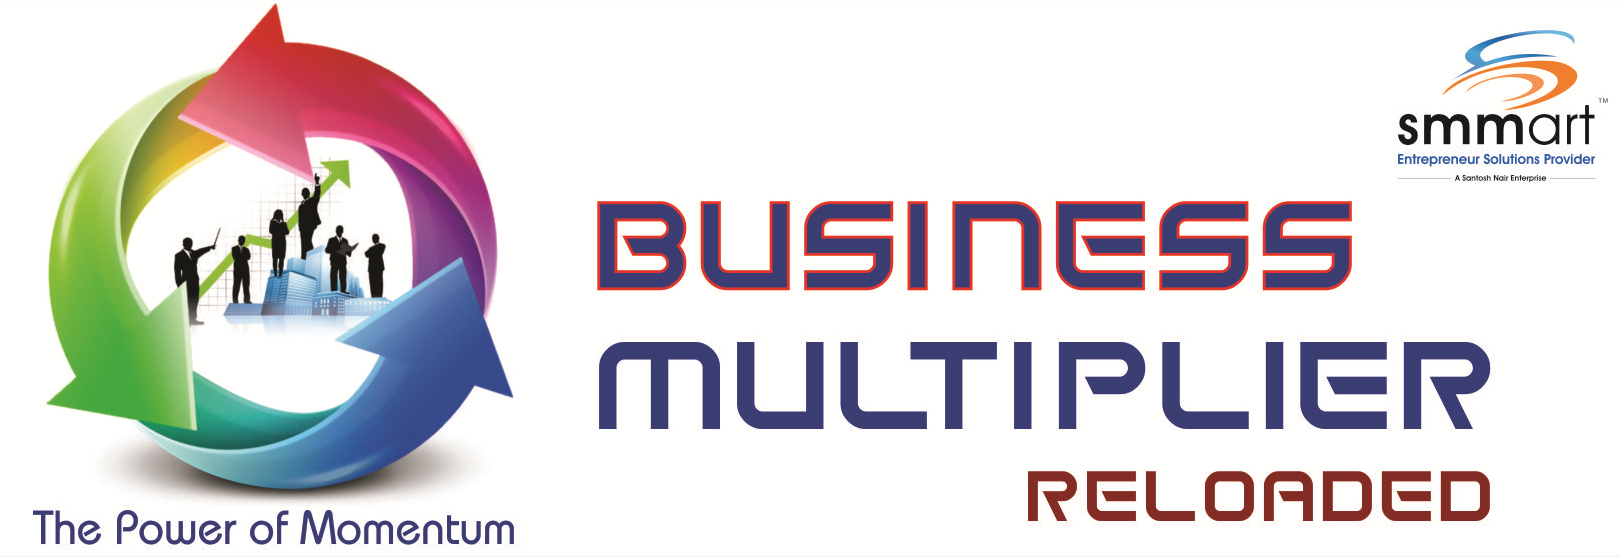 Business Multiplier Reloaded